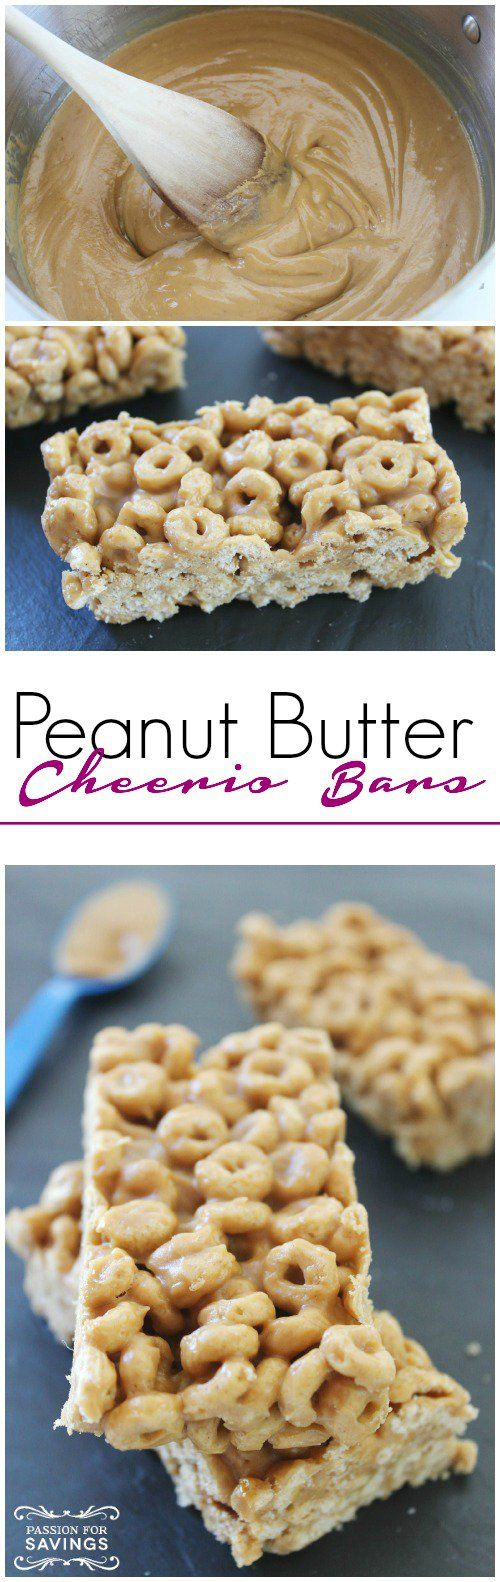 Peanut Butter Cheerio Bars! Homemade Breakfast Recipe or Snack Recipe for an easy Treat! (Blender Muffin Pb2)